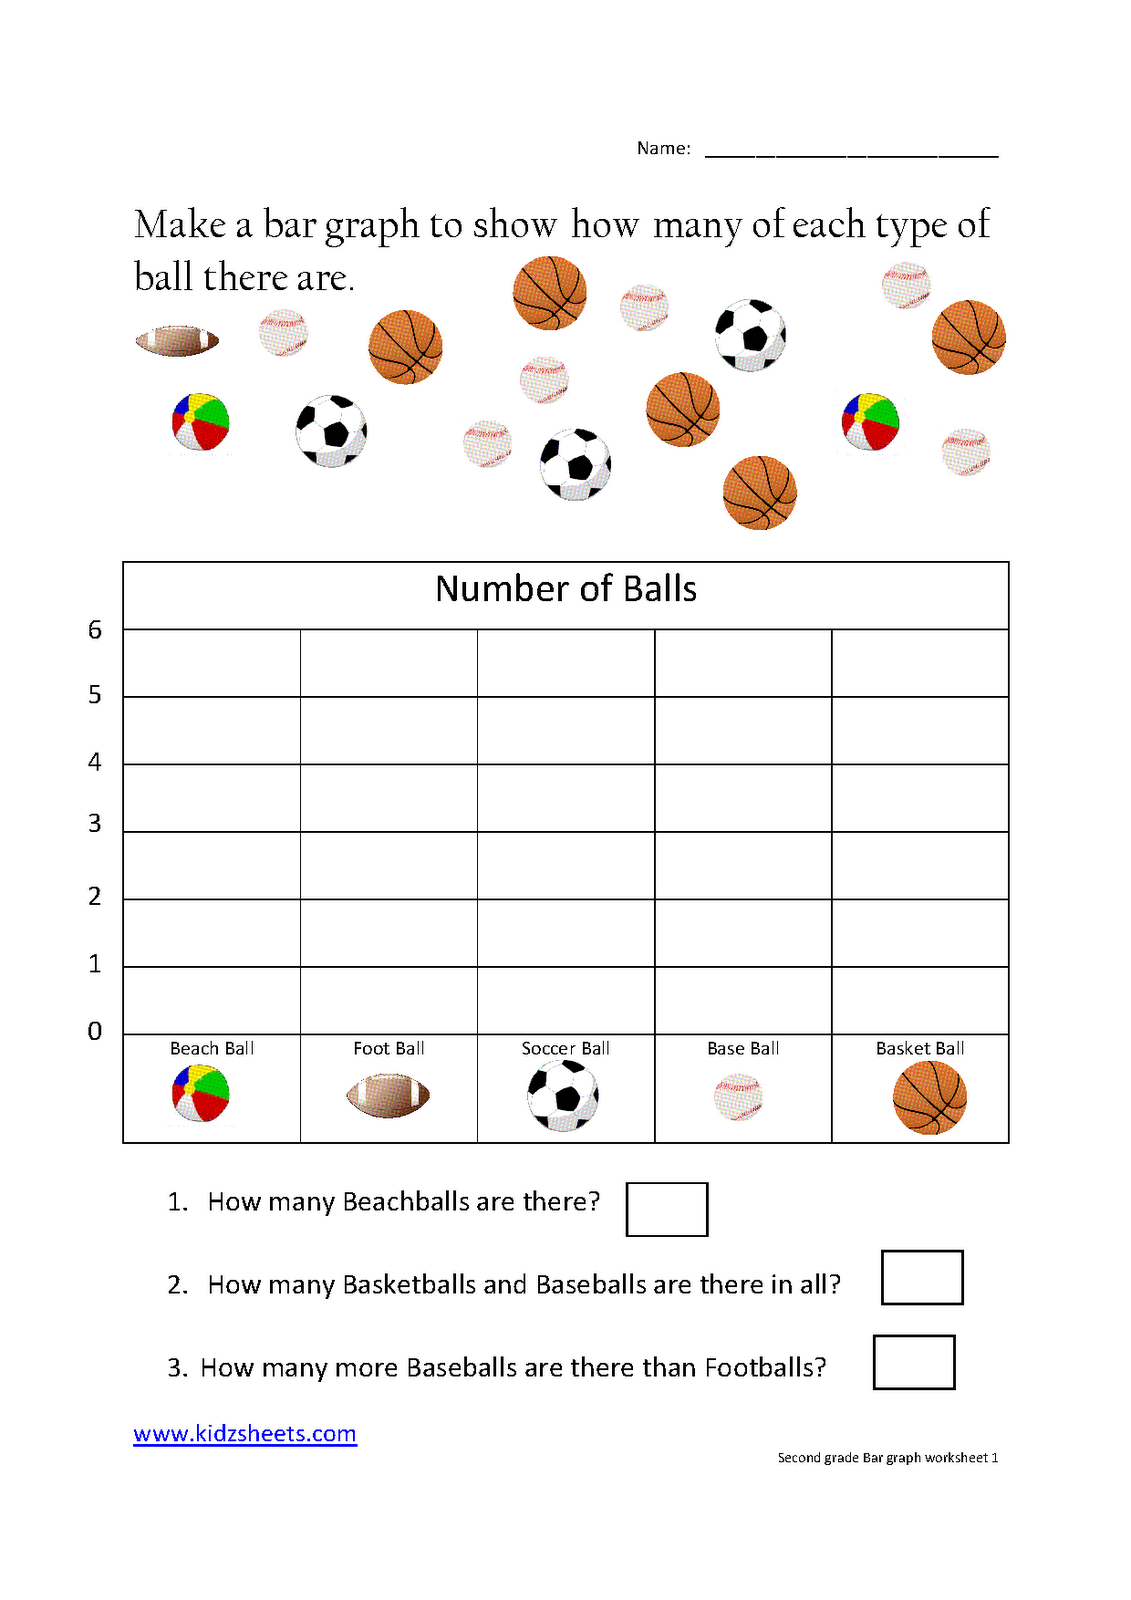 Second Grade Bar Graph Worksheet1